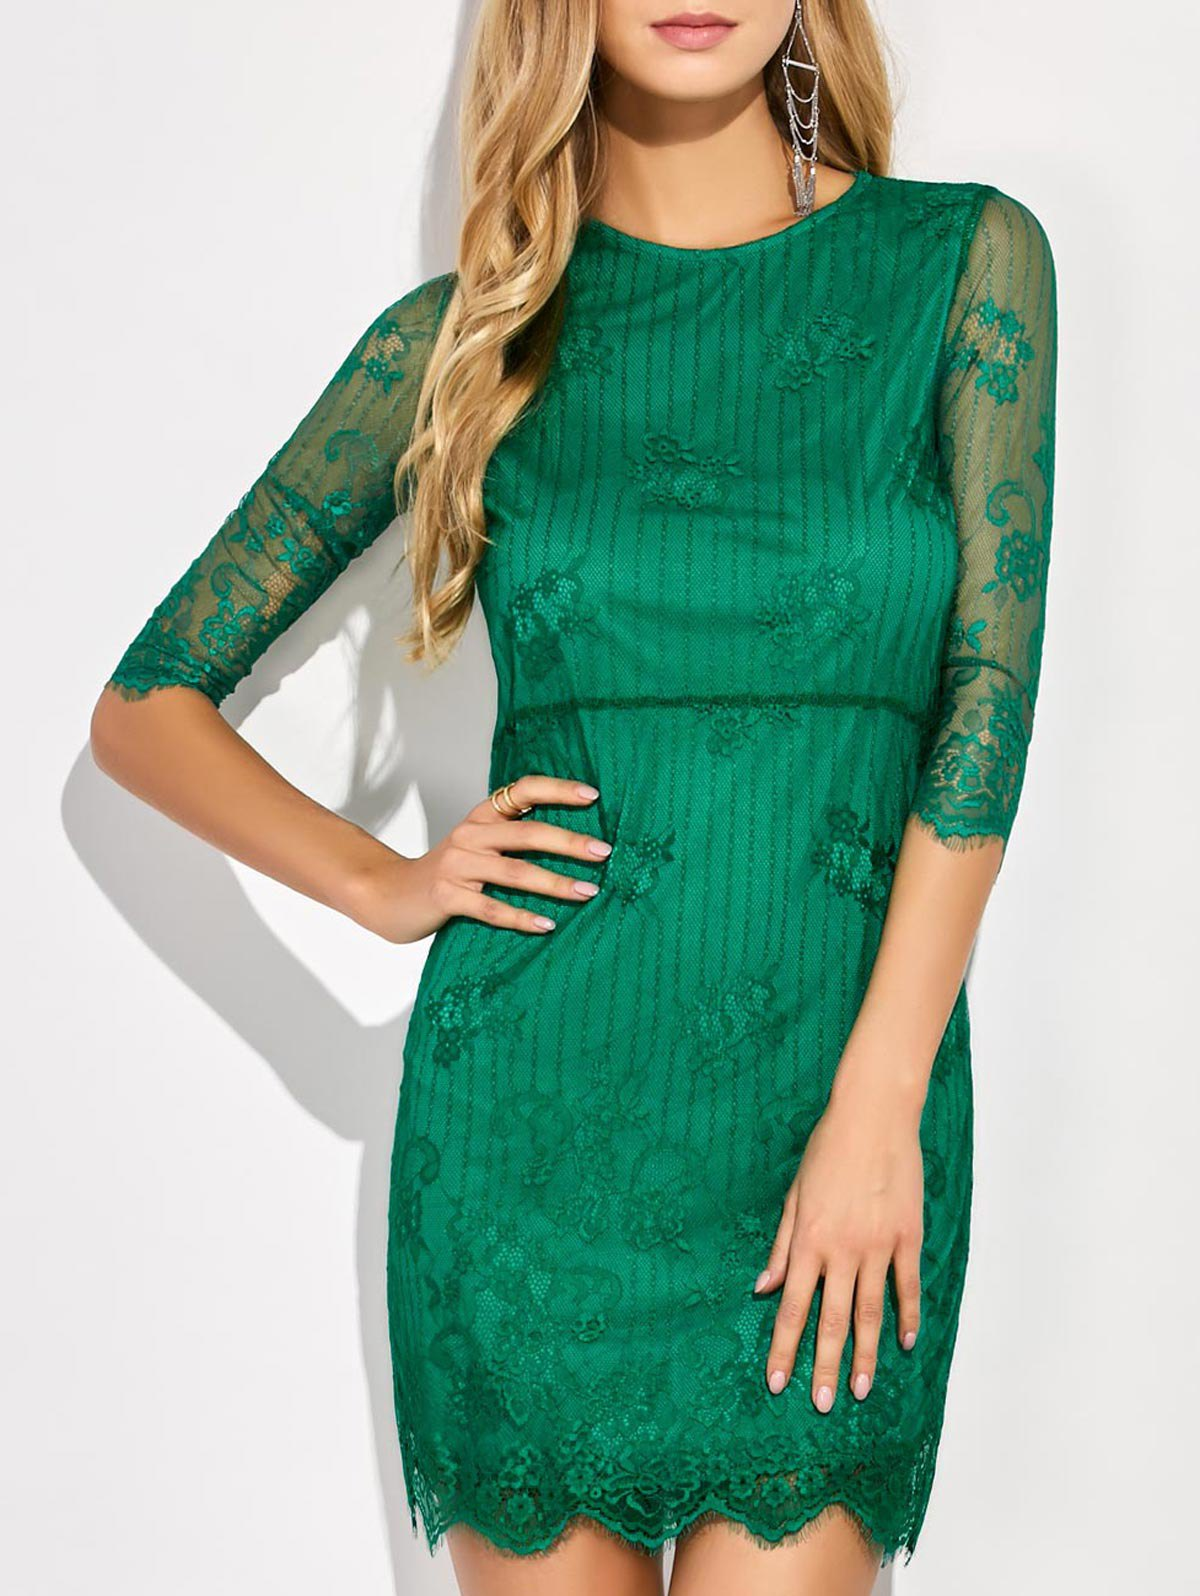 Scalloped Mini Floral Lace Dress - Green